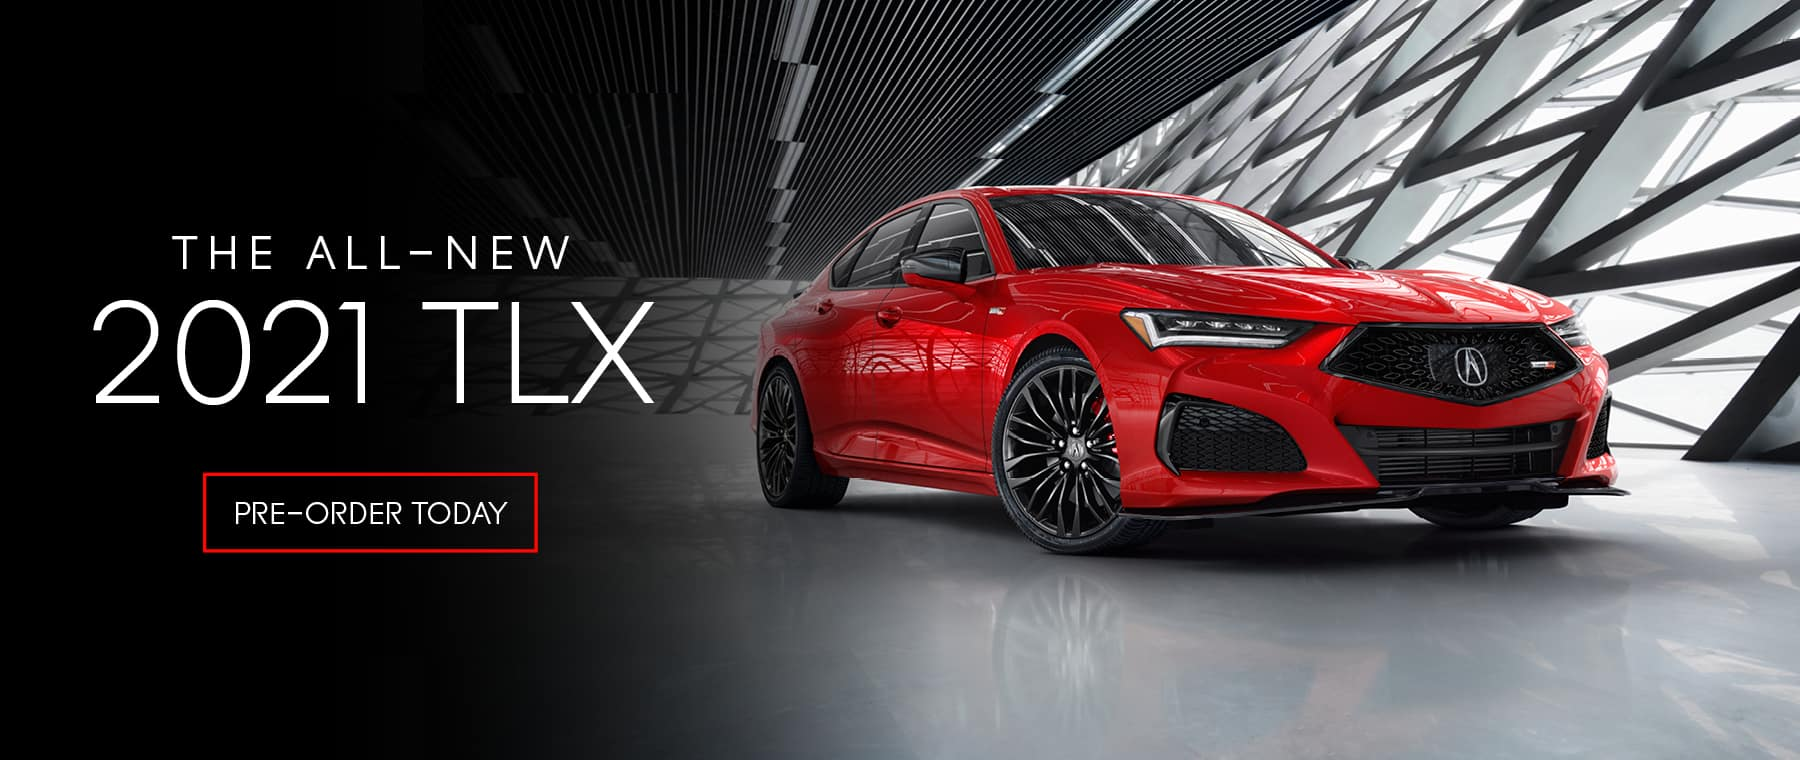 The All-New 2021 TLX